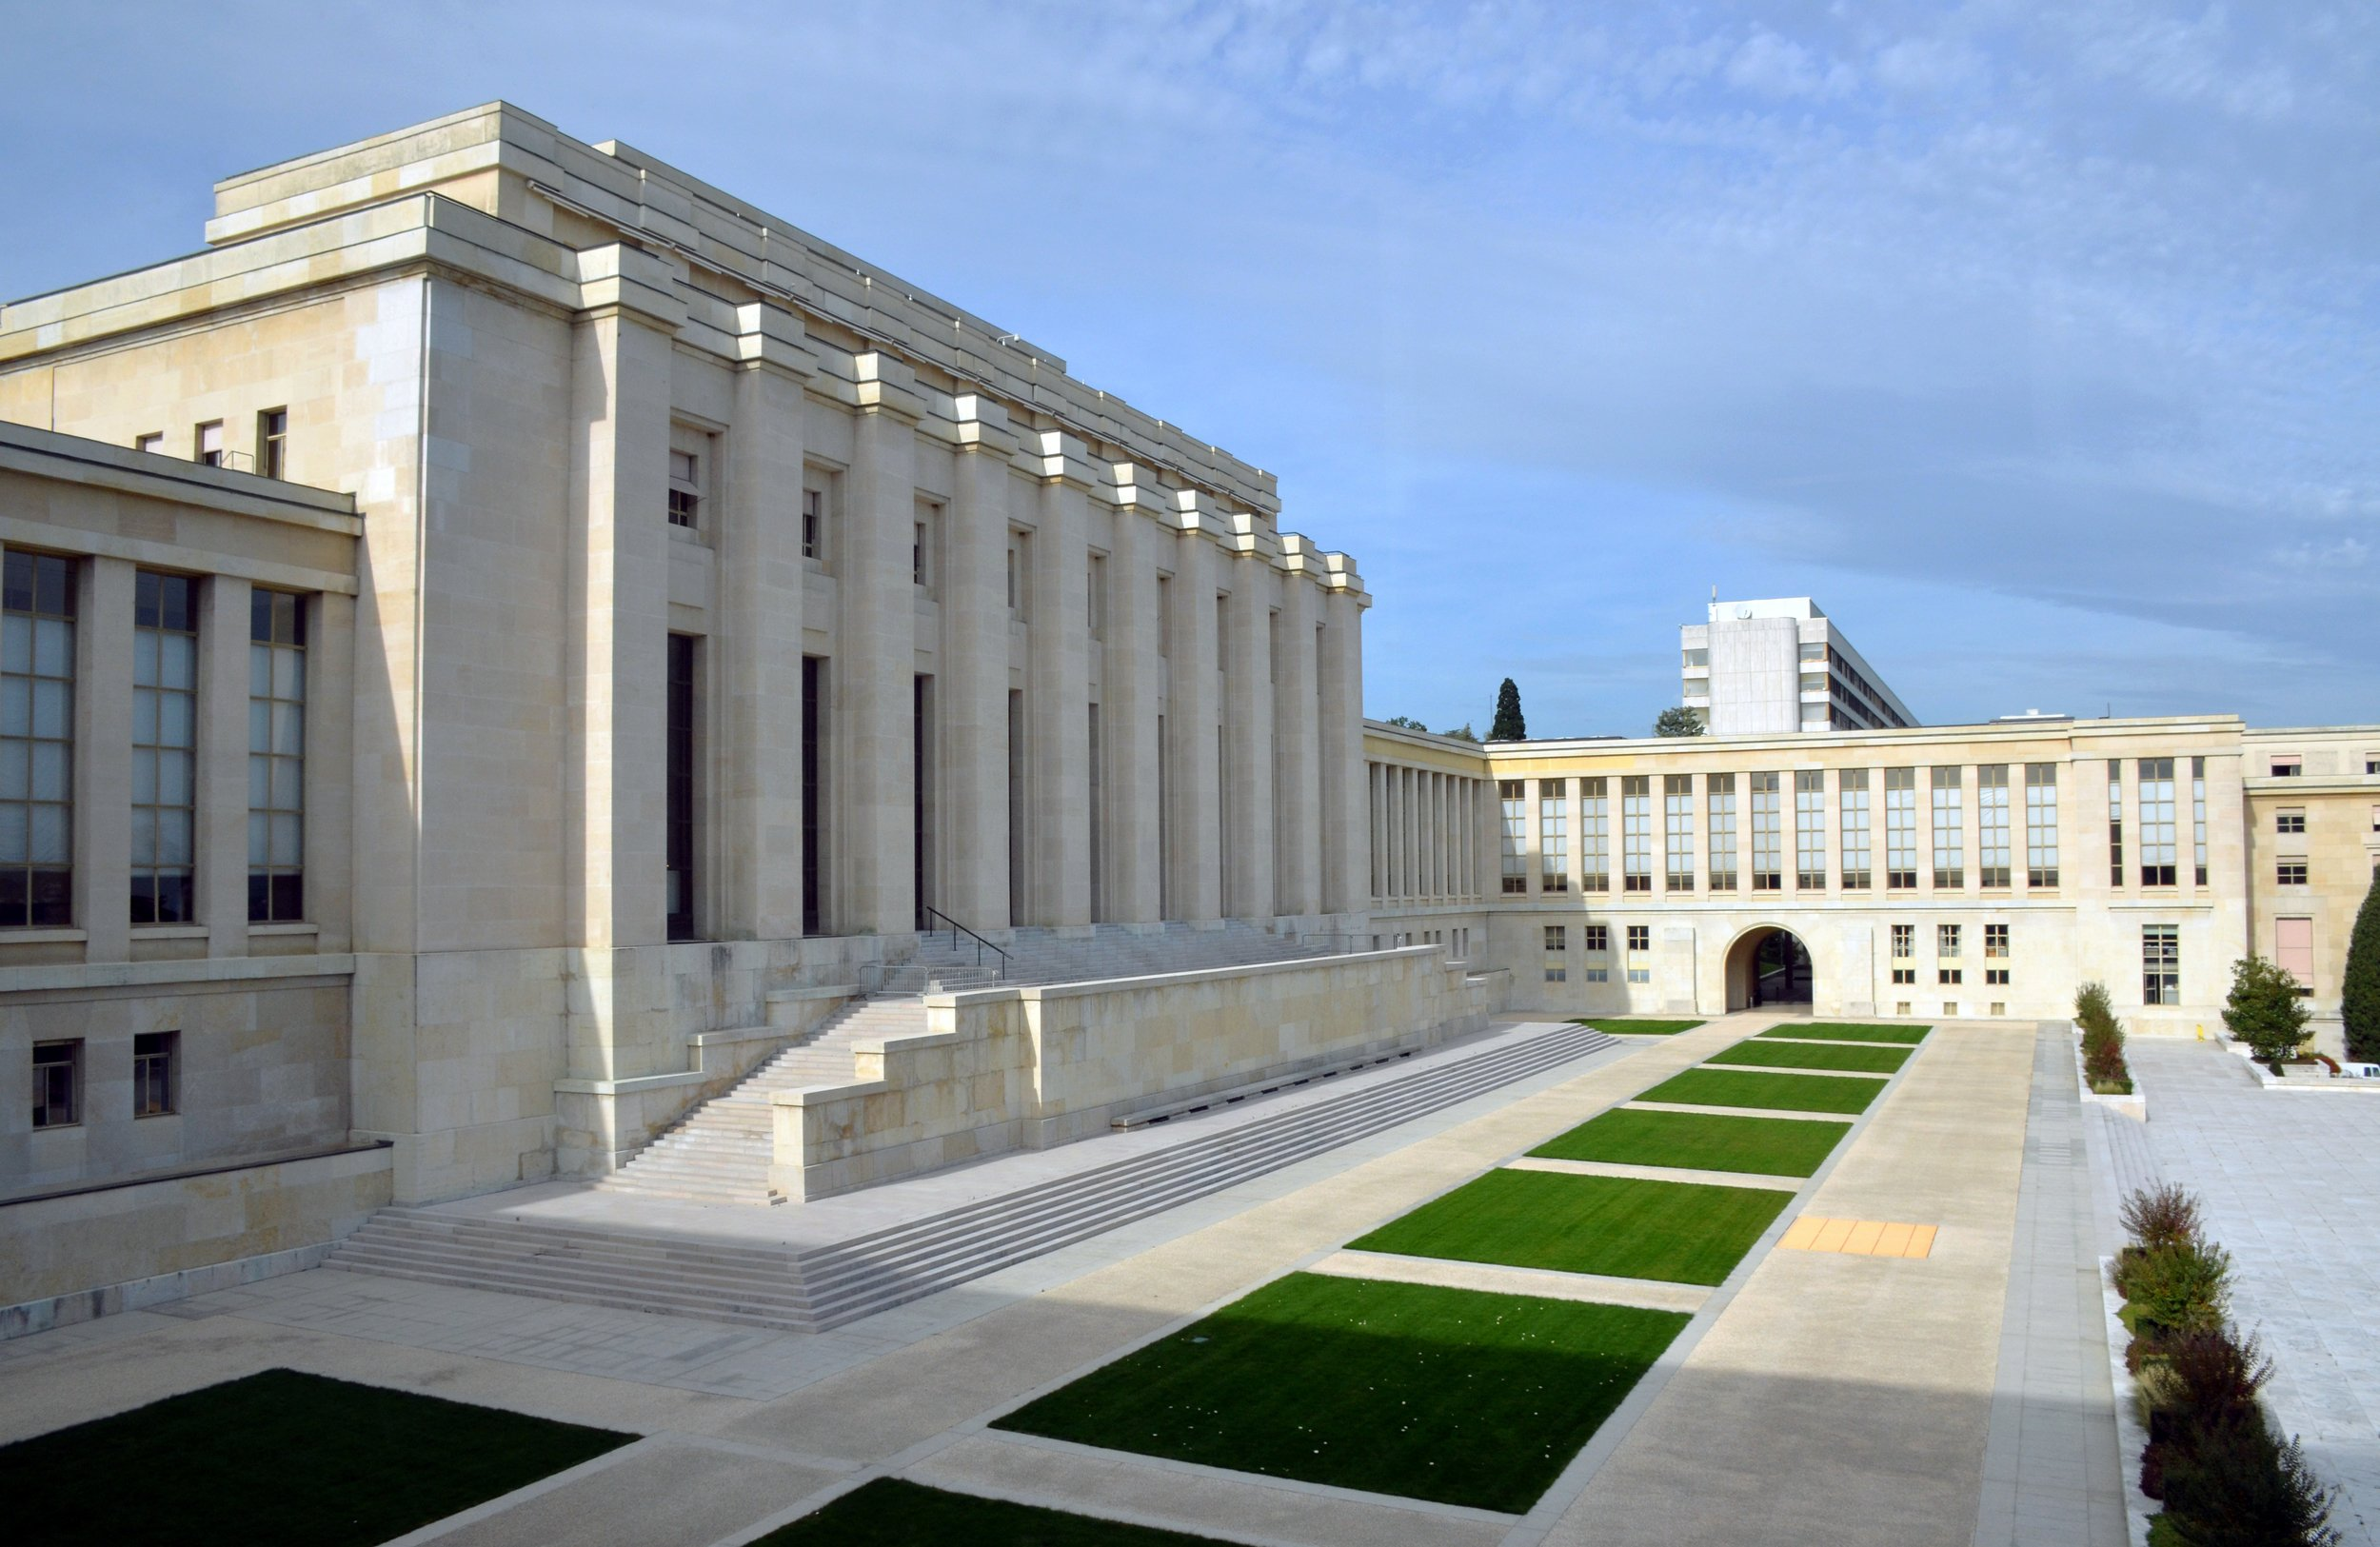 The Palace of Nations (French: Le Palais des Nations), is the home of the United Nations Office at Geneva. Photo by Vassil, Wikimedia Commons.